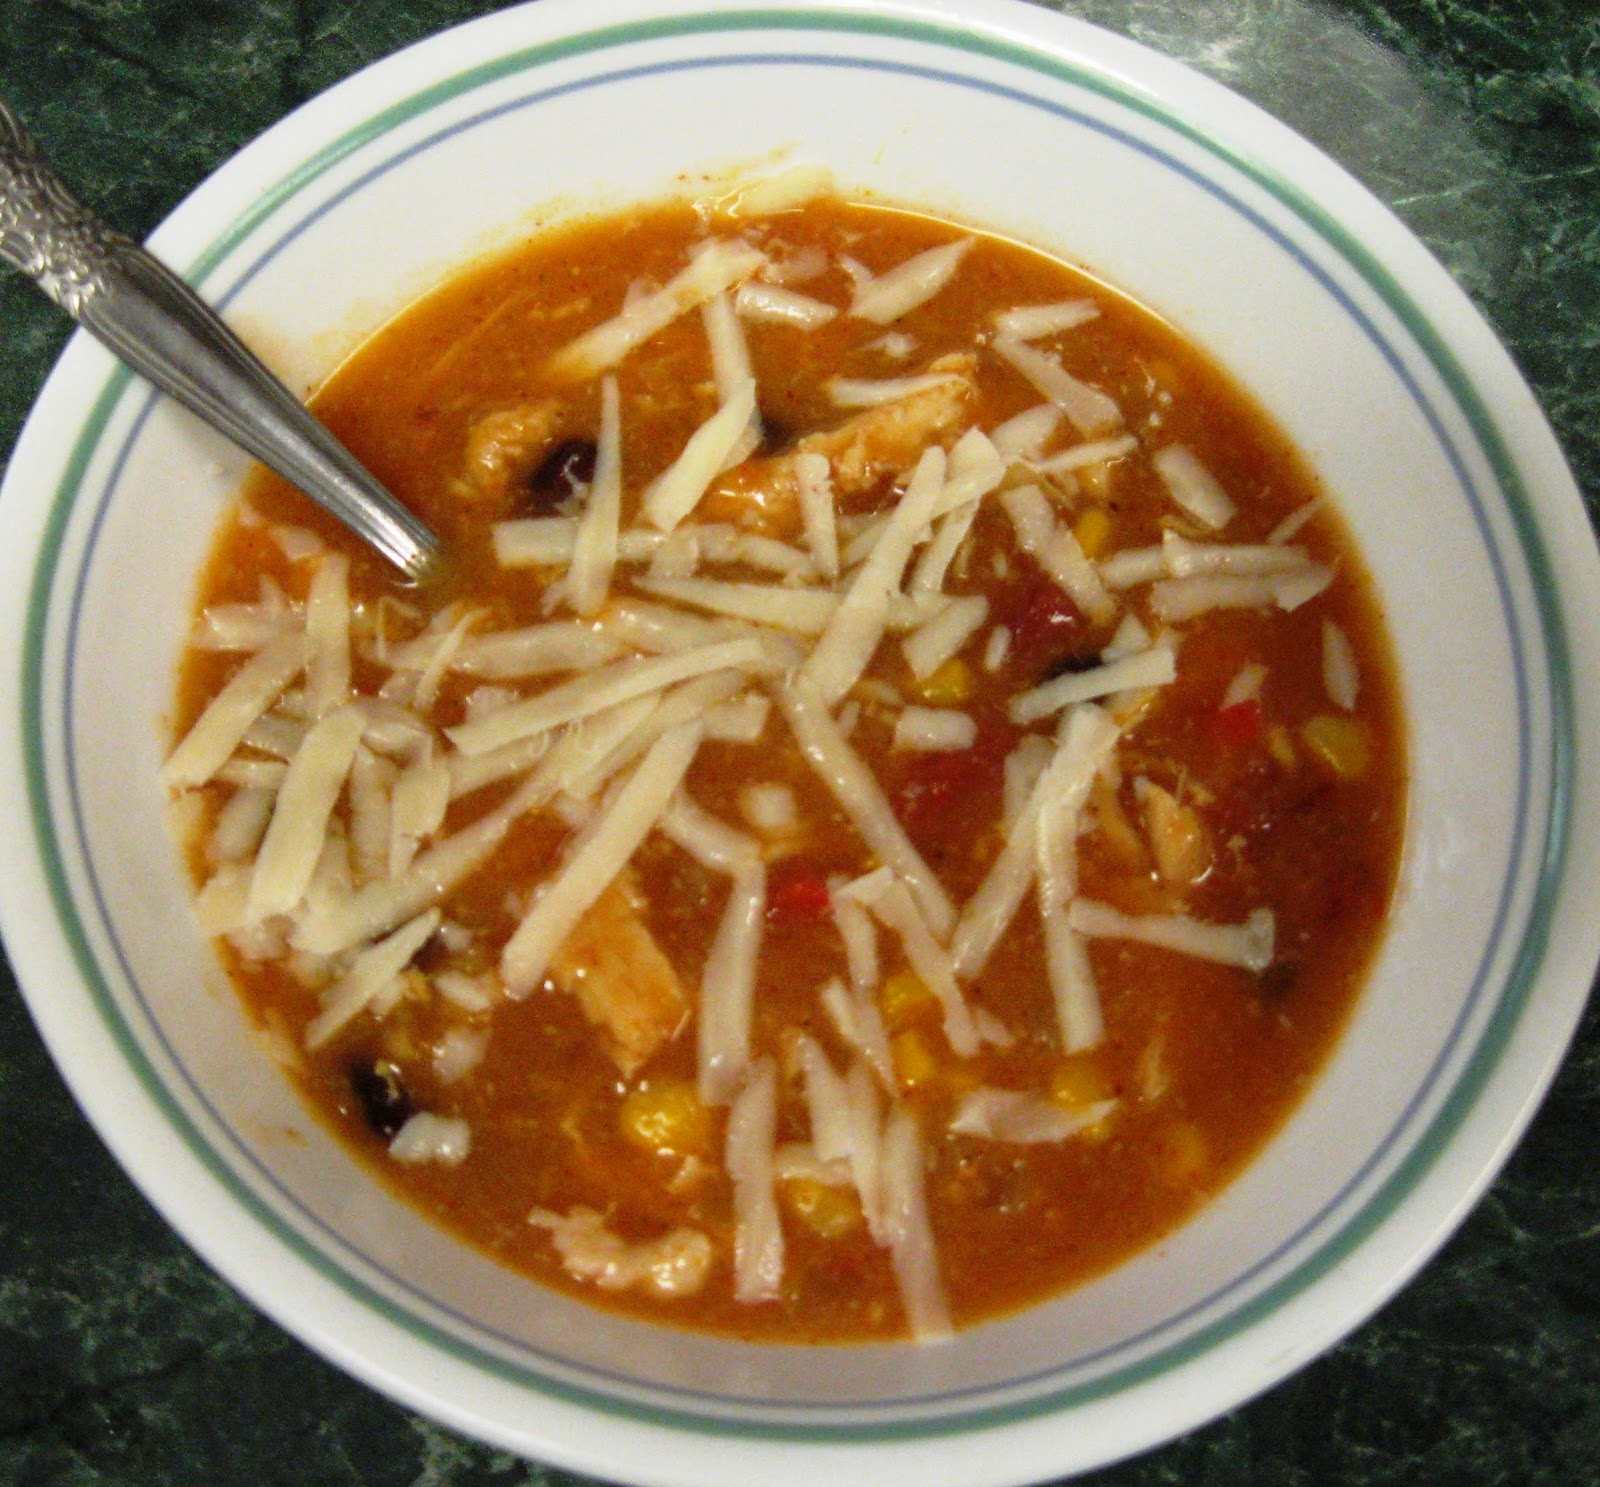 ... ... Healthy & Low Calorie: Chicken Enchilada Soup in the Slow Cooker